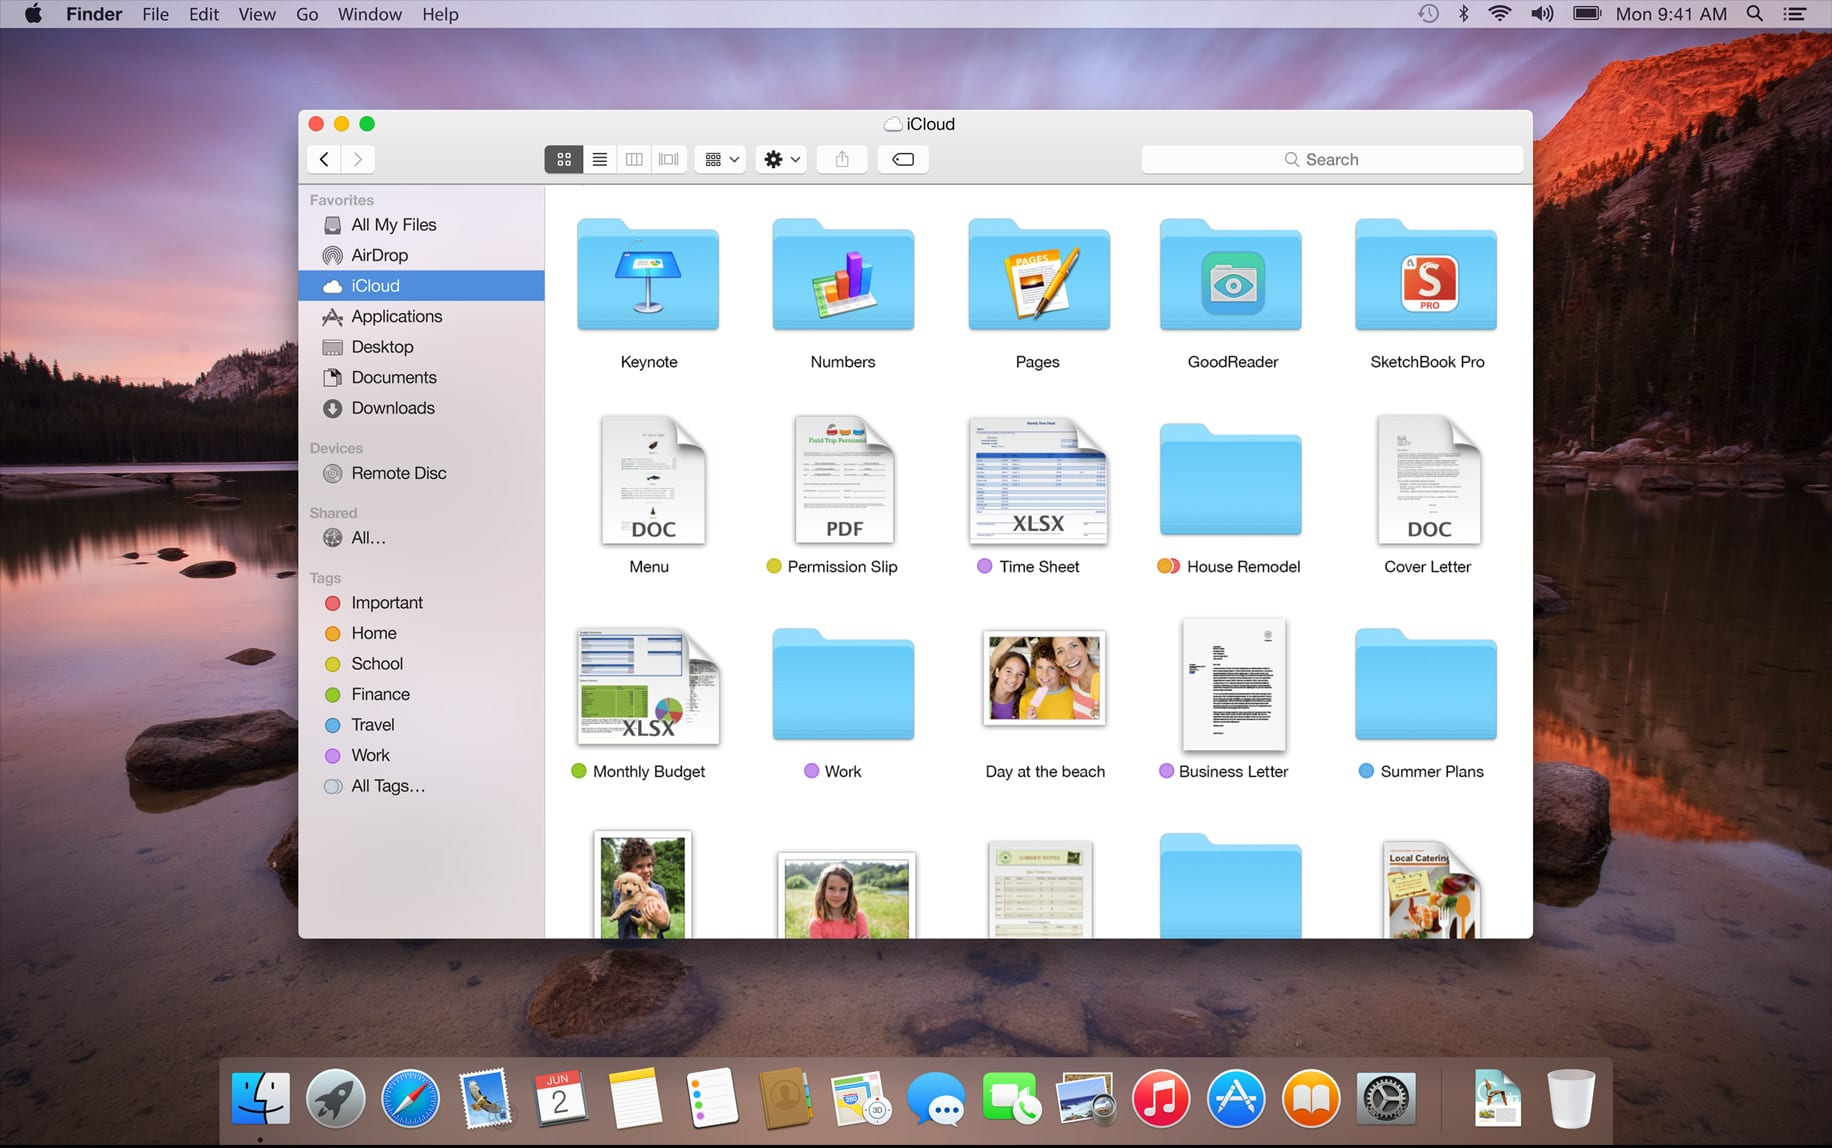 osx_yosemite-finder-view